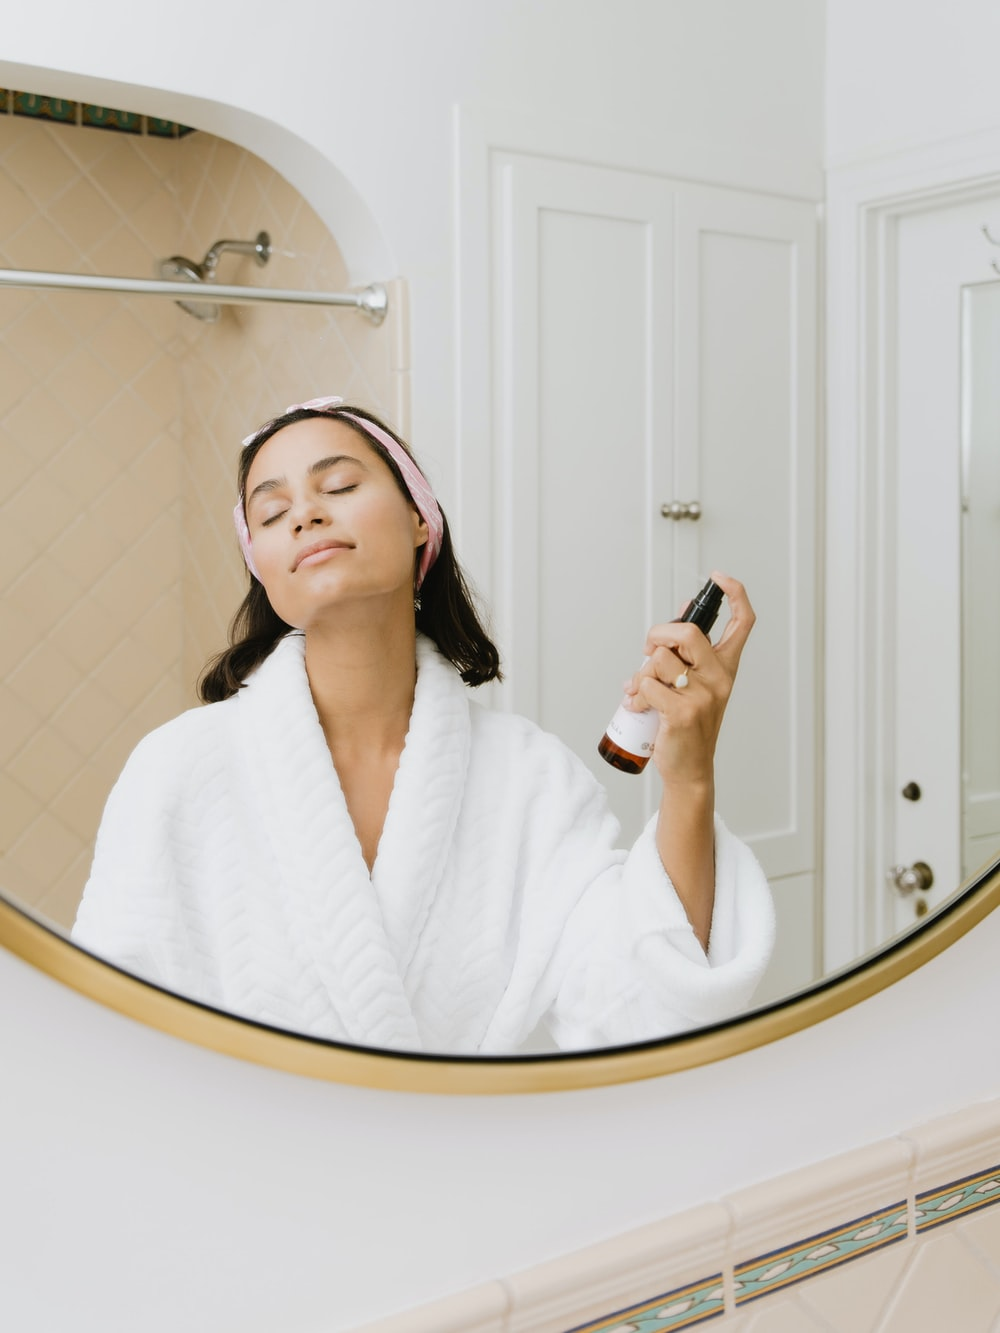 woman in white bathrobe holding smartphone